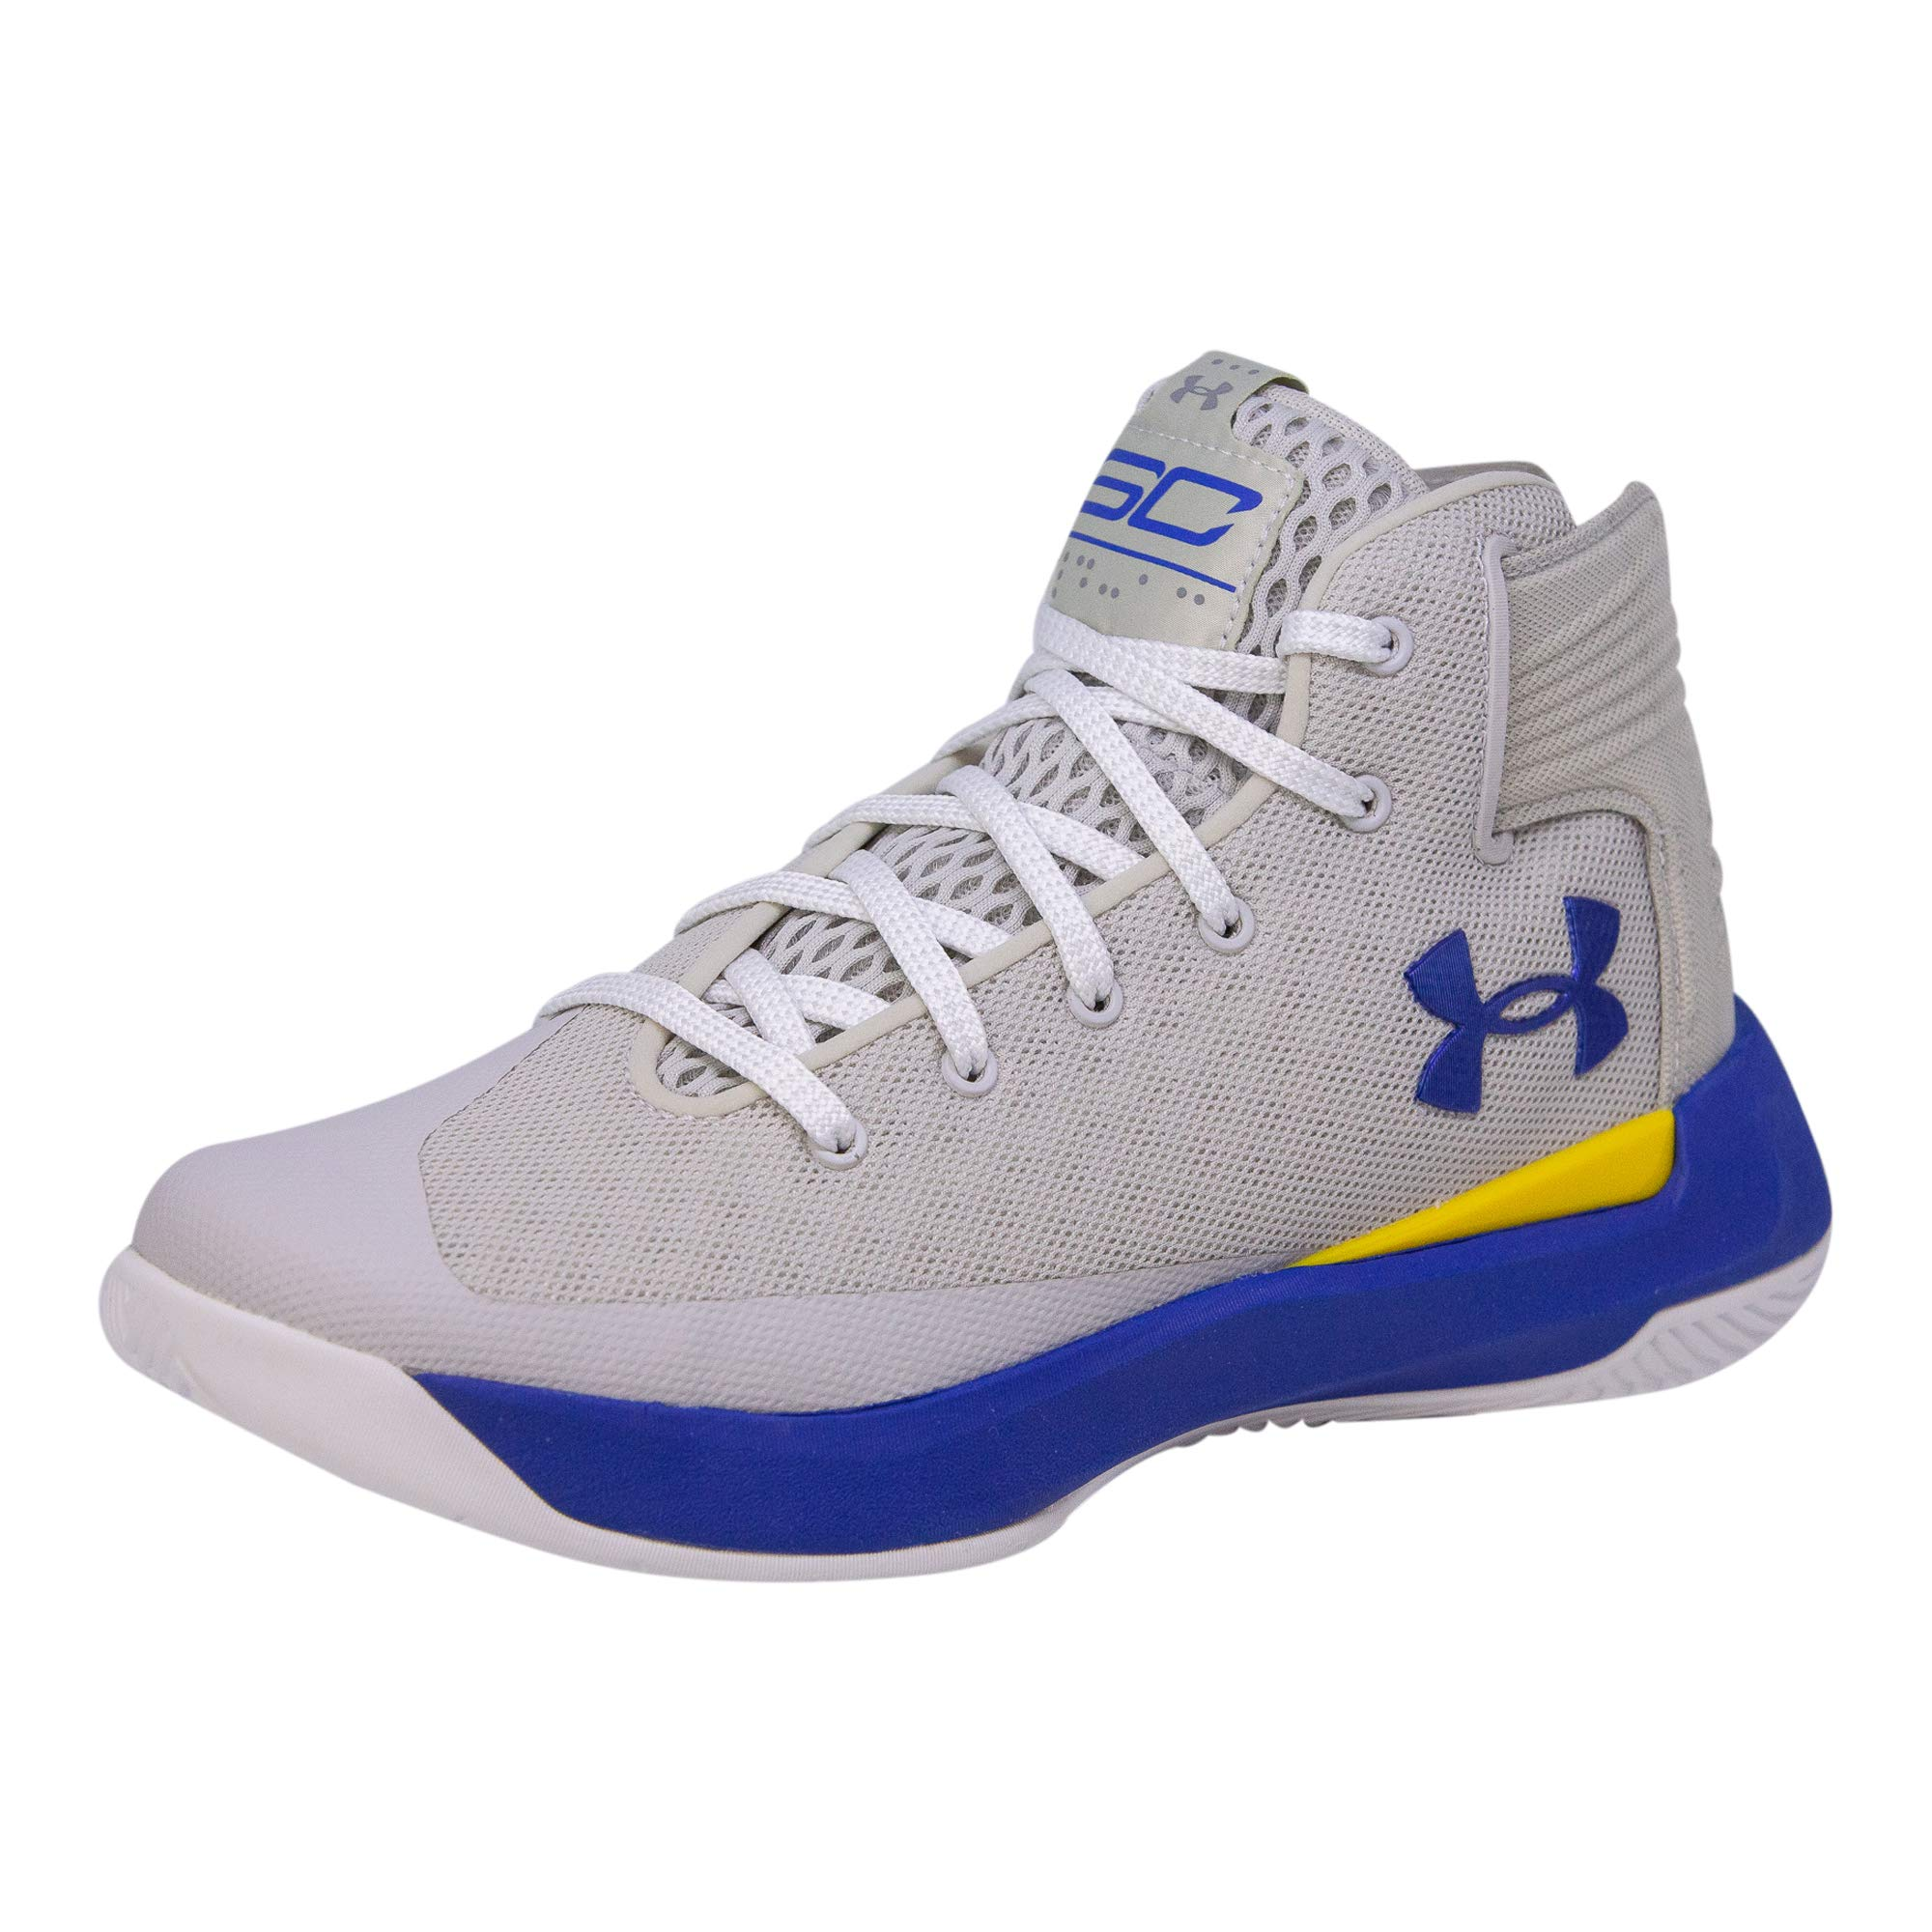 Under Armour Kids Boys UA GS Curry 3ZERO Basketball (Grey/Taxi/Royal Blue, 5.5 M US Big Kid)